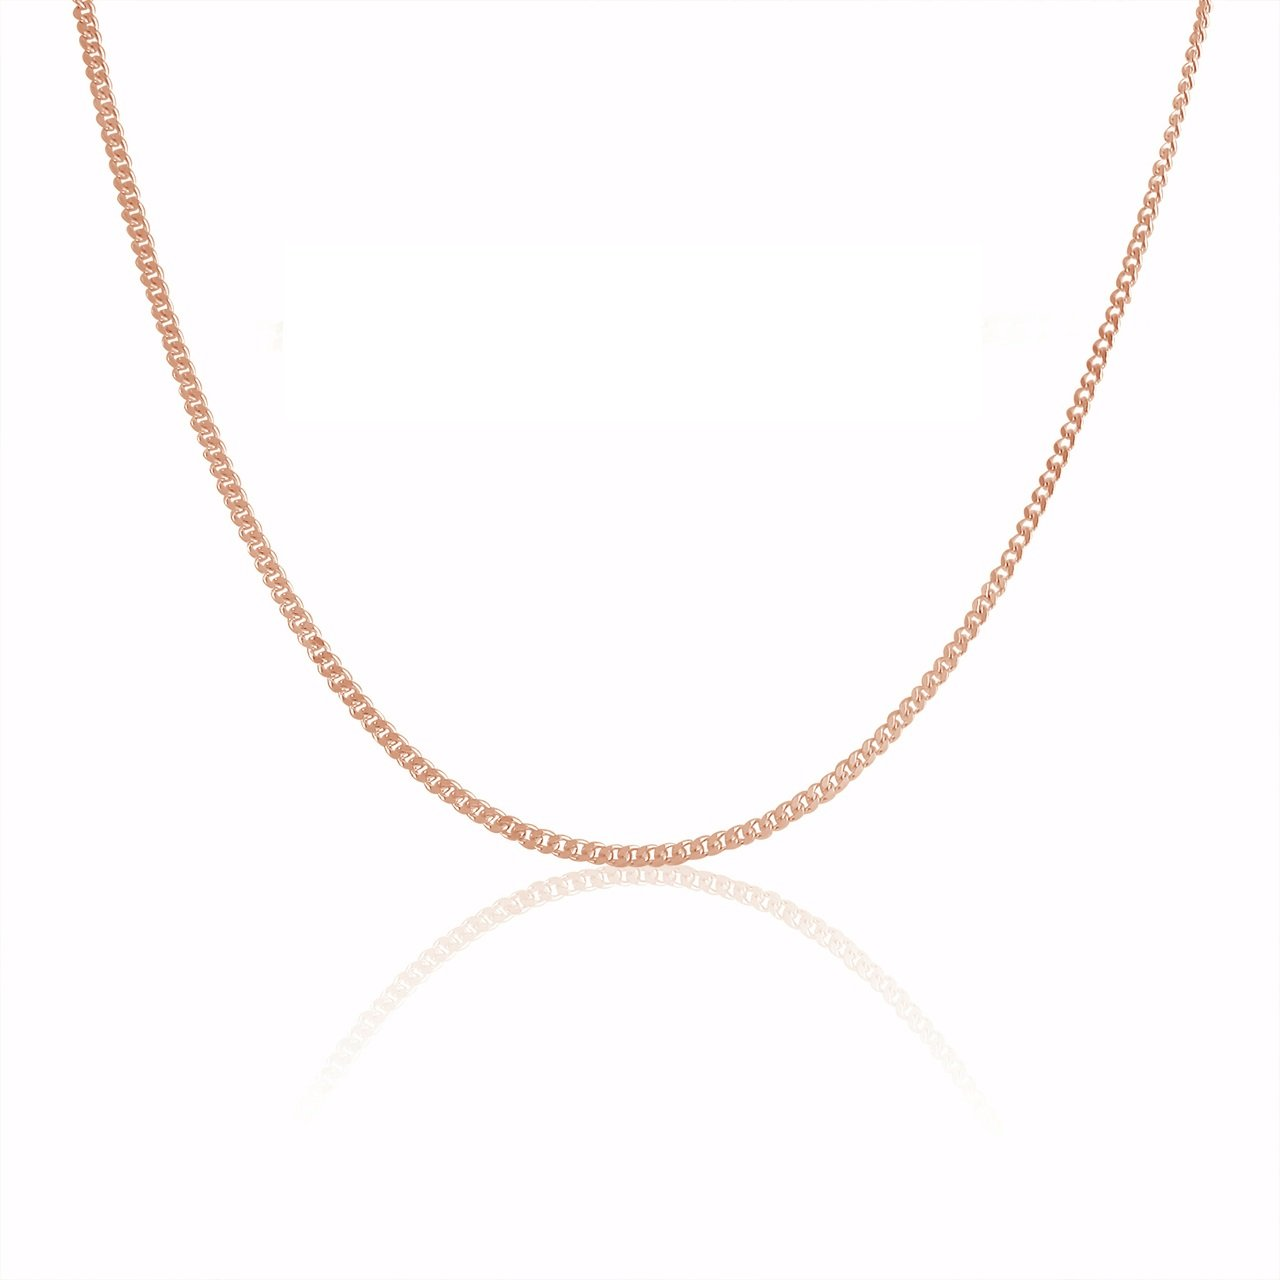 14K Gold 1.1MM Thin Curb/Cuban Chain Necklace- Available in Yellow, White or Rose-16-24 Pori Jewelers